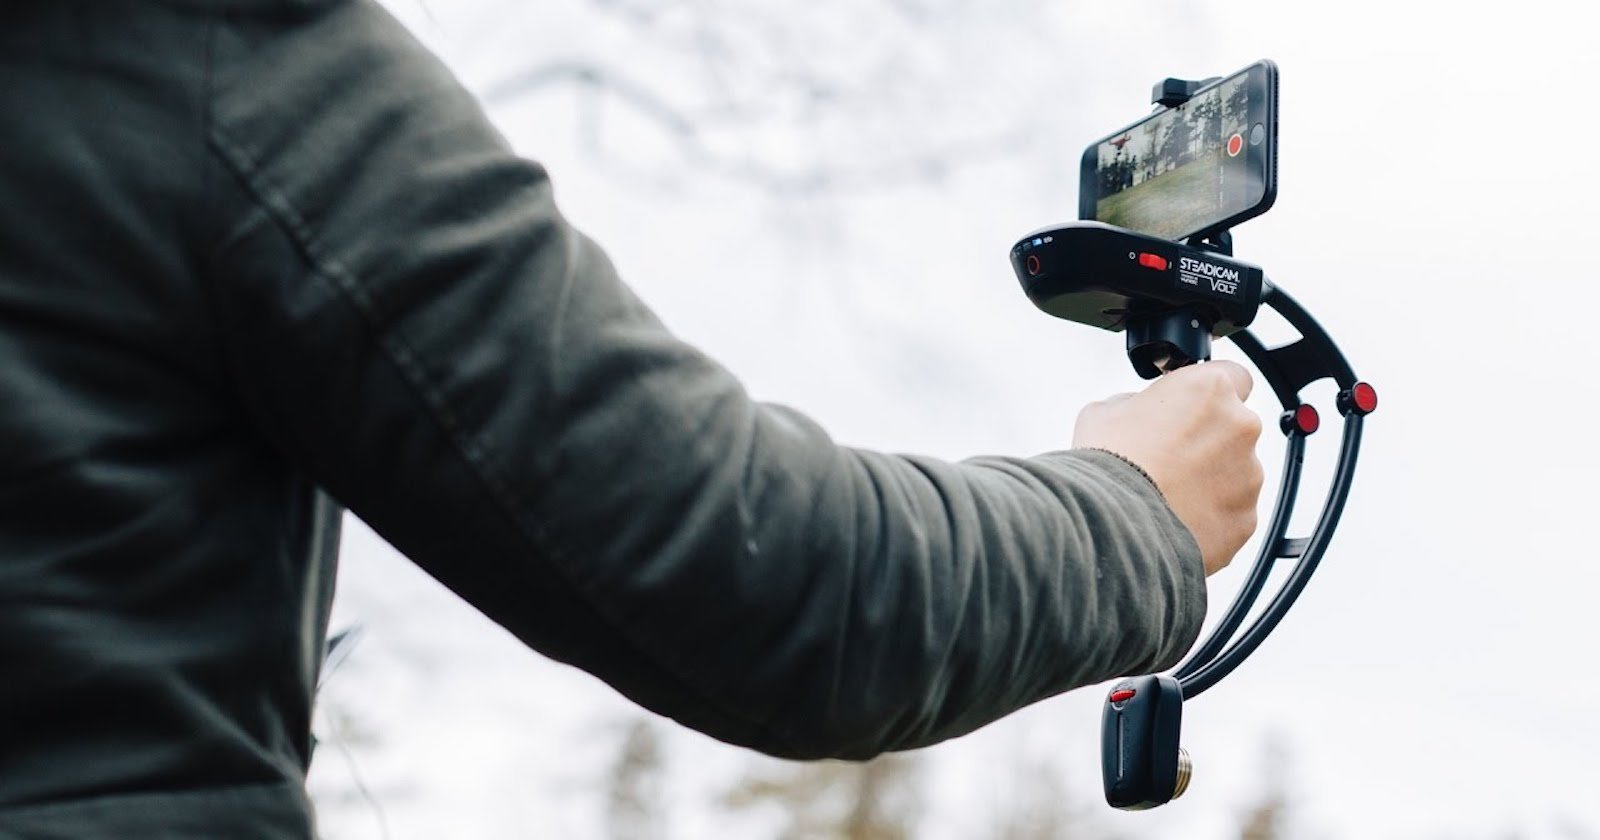 Steadicam Unveils Its Volt Stabilizer for Smartphones, Takes on the DJI Osmo